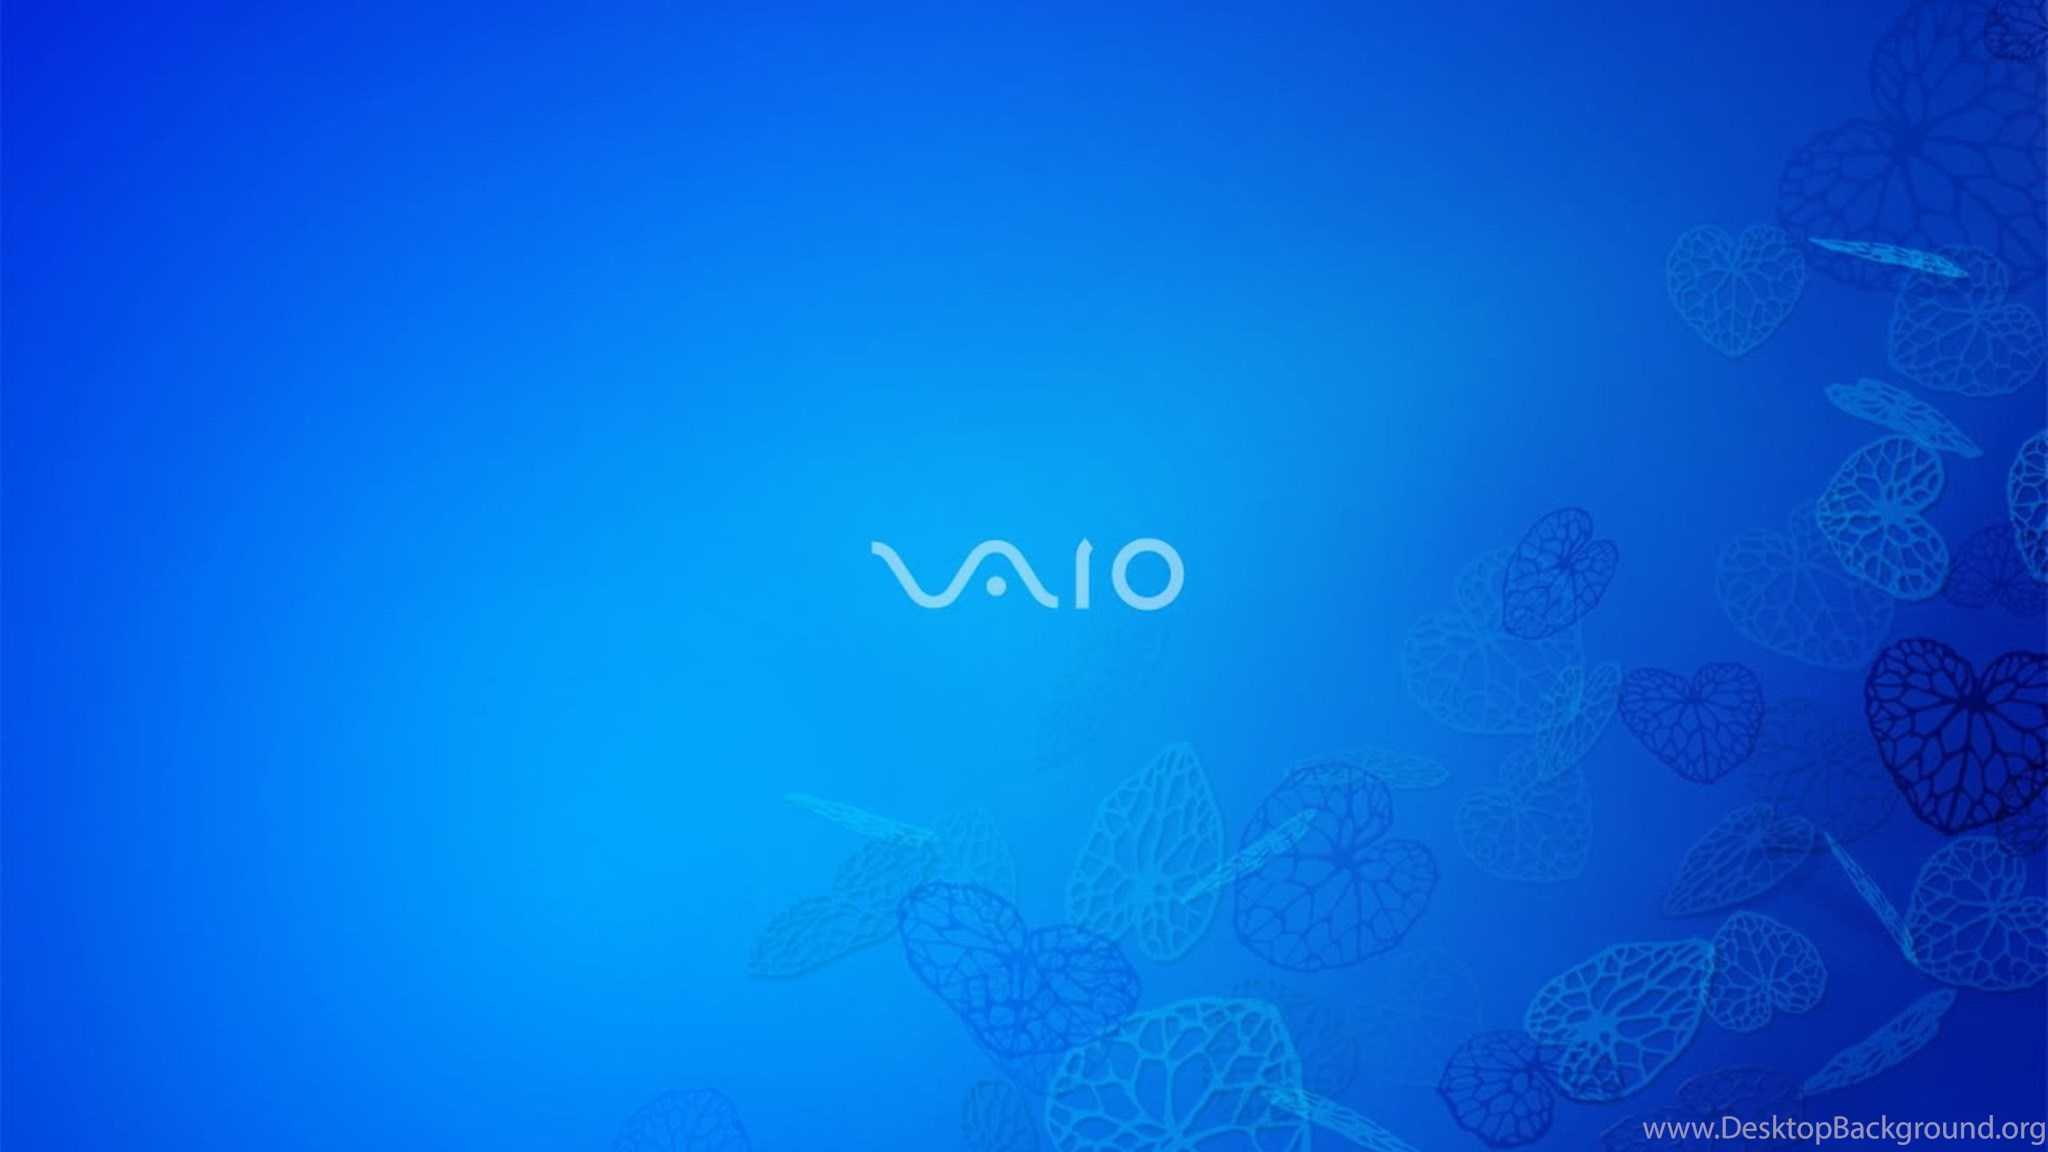 Sony Vaio Azure Backgrounds Wallpapers – Windows 10